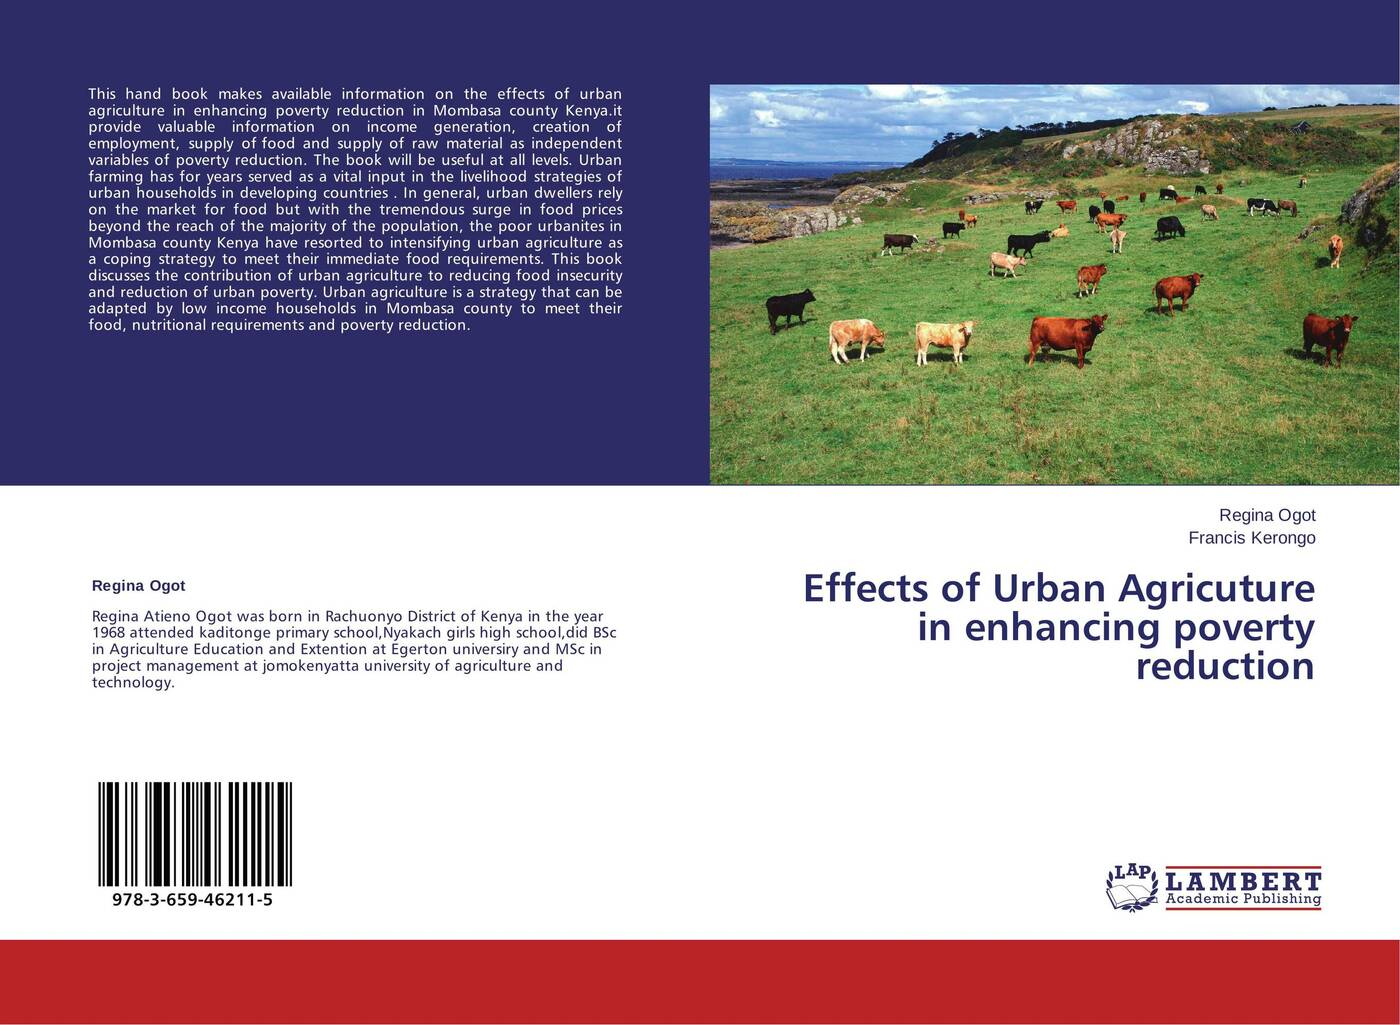 Regina Ogot and Francis Kerongo Effects of Urban Agricuture in enhancing poverty reduction yesuf hagos abdela poverty and livelihood strategeies of househilds in urban ethiopia